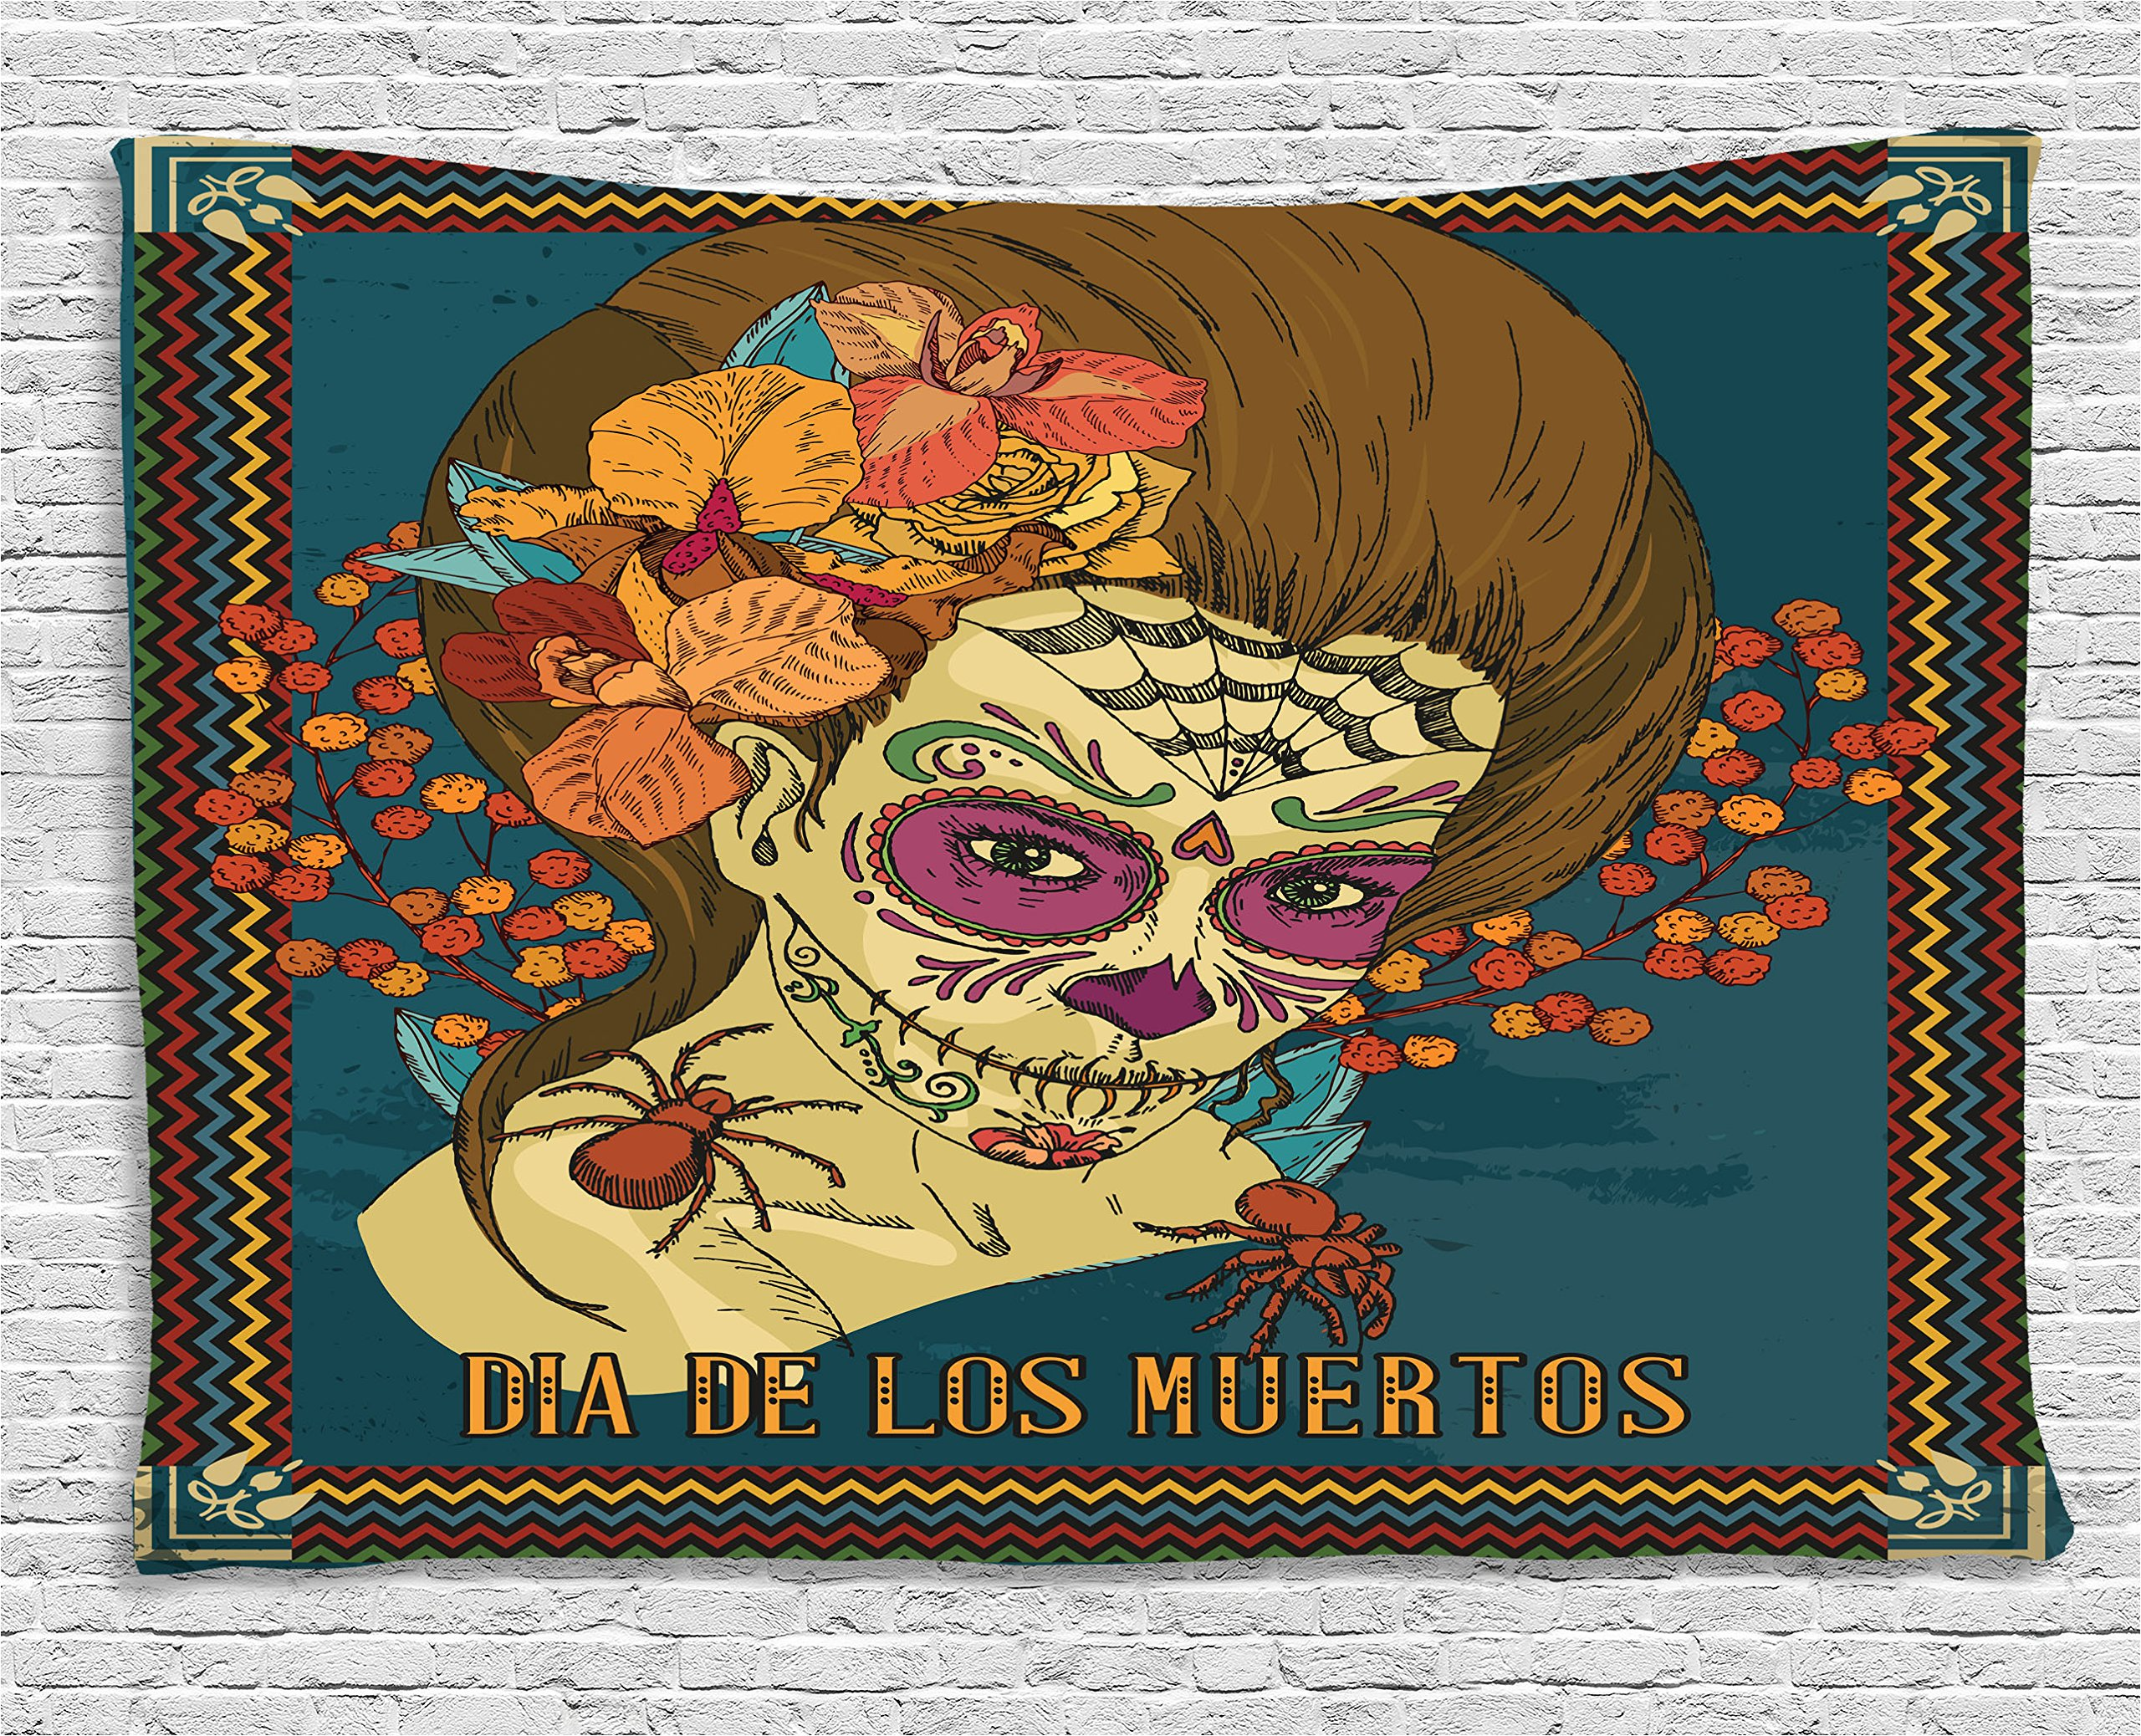 Ambesonne Day of The Dead Decor Tapestry, Dia de Los Muertos Skull Girl with Roses Hearts Print, Wall Hanging for Bedroom Living Room Dorm, 80 W X 60 L inches, Petrol Blue Caramel Amber